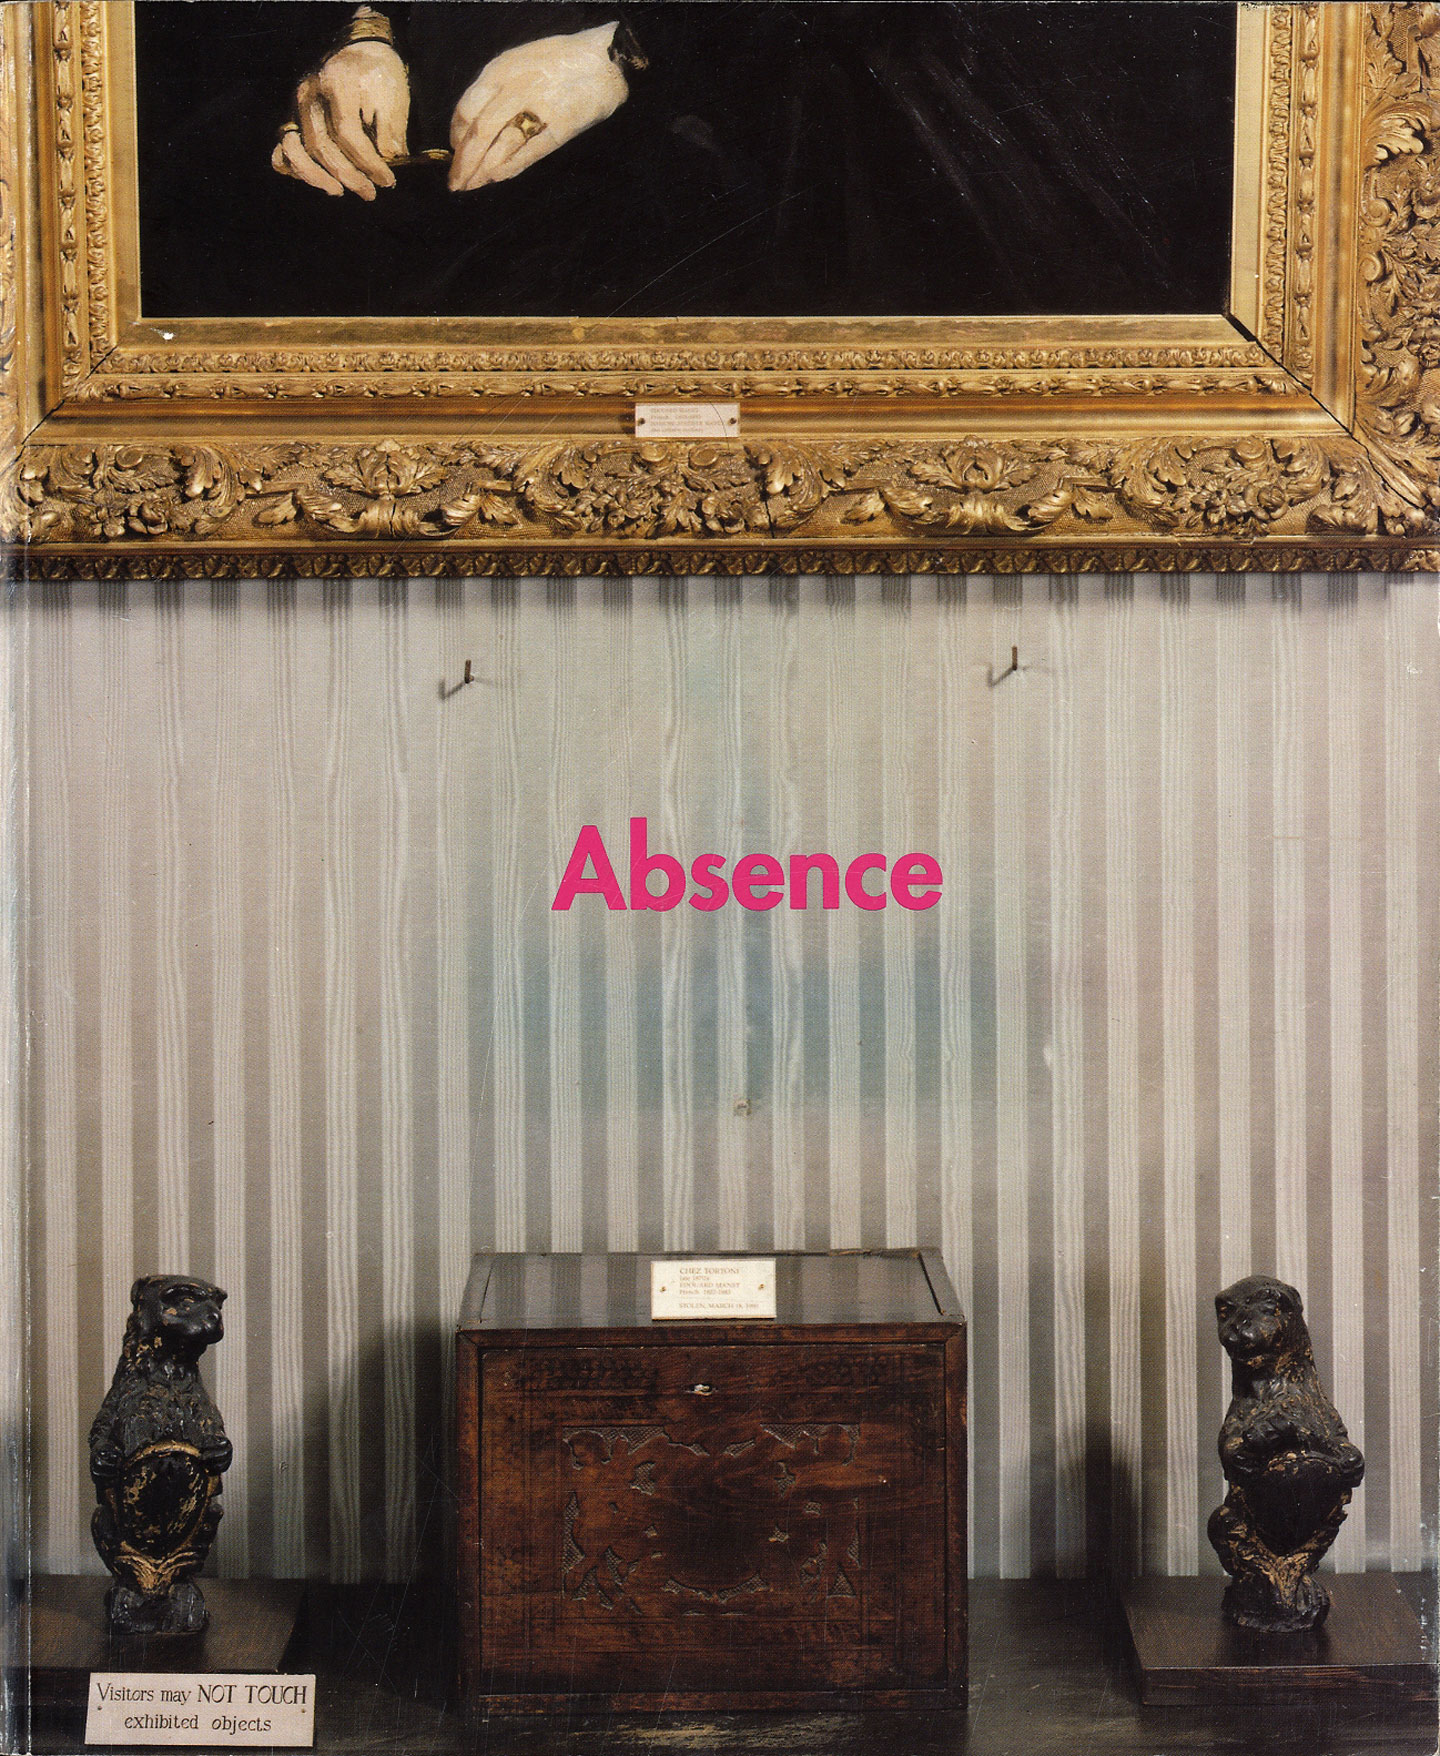 Sophie Calle: Absence